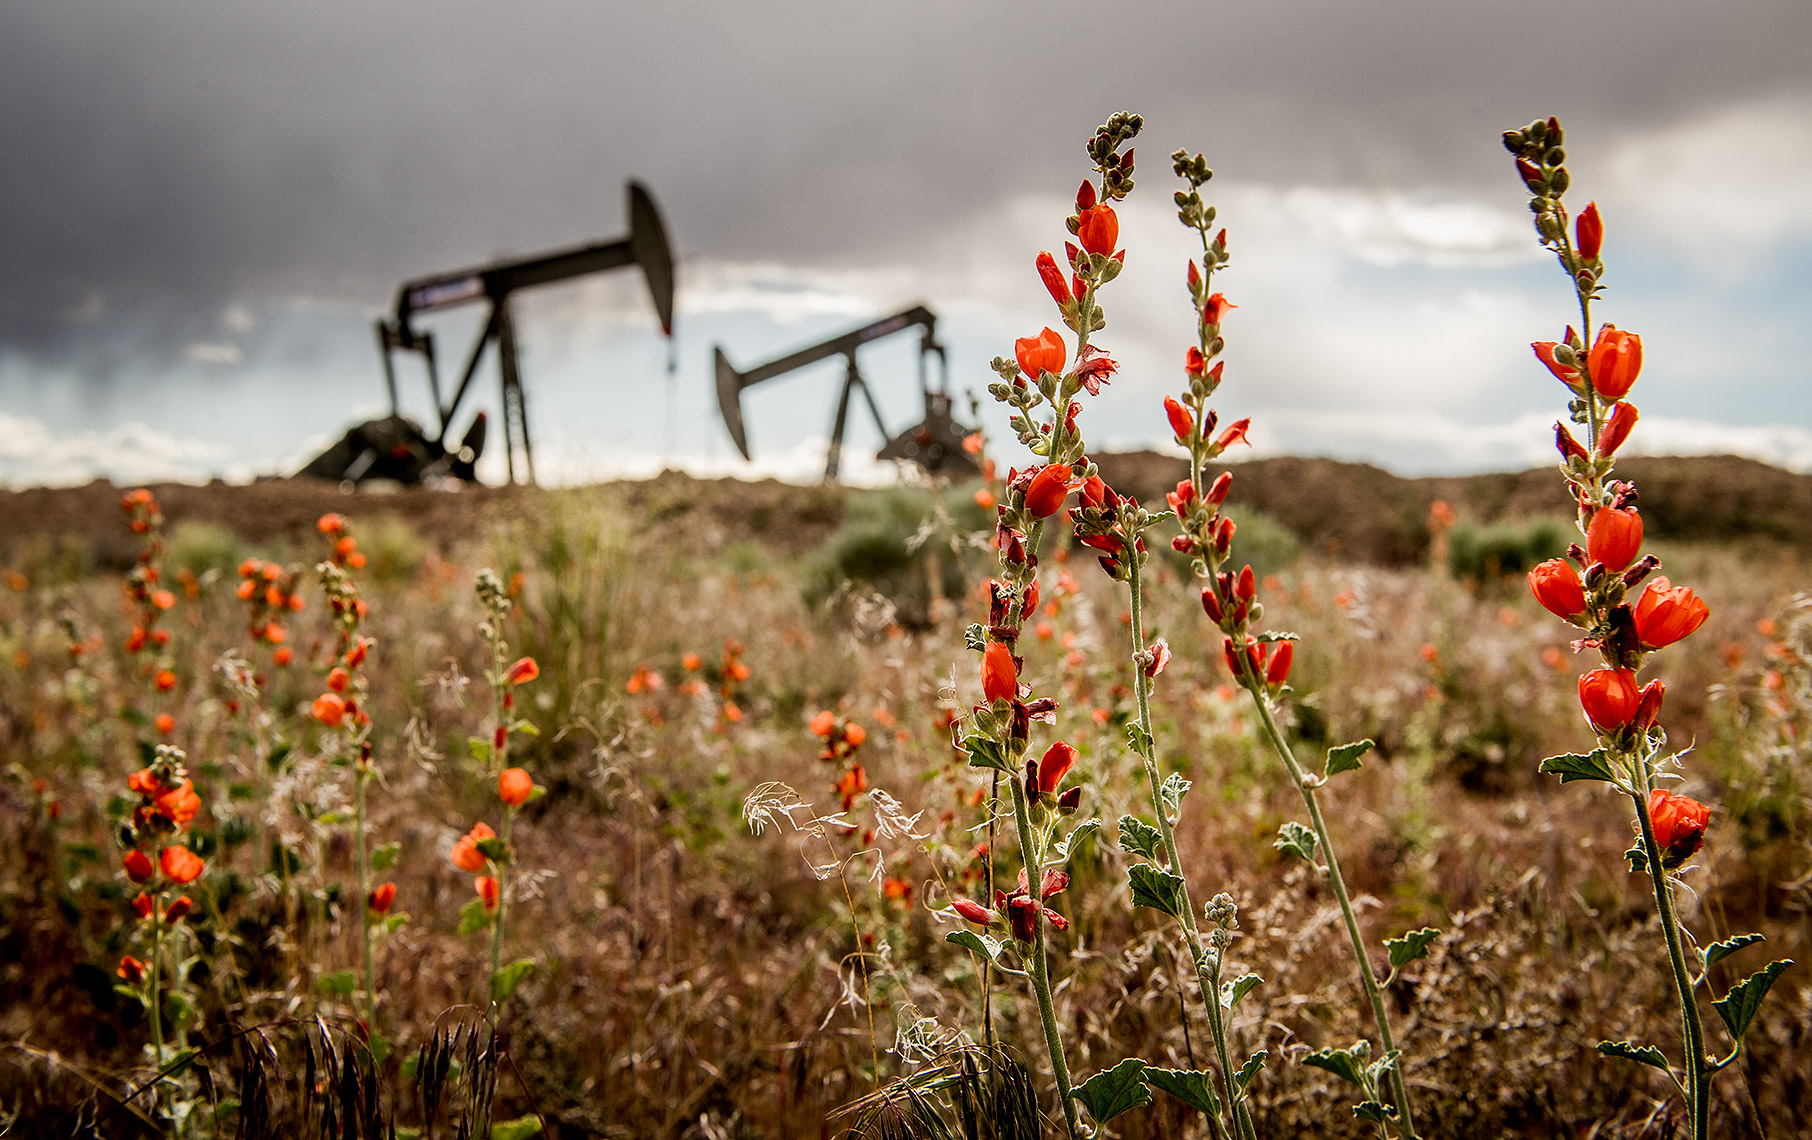 Flowers in Oilfield Photograph